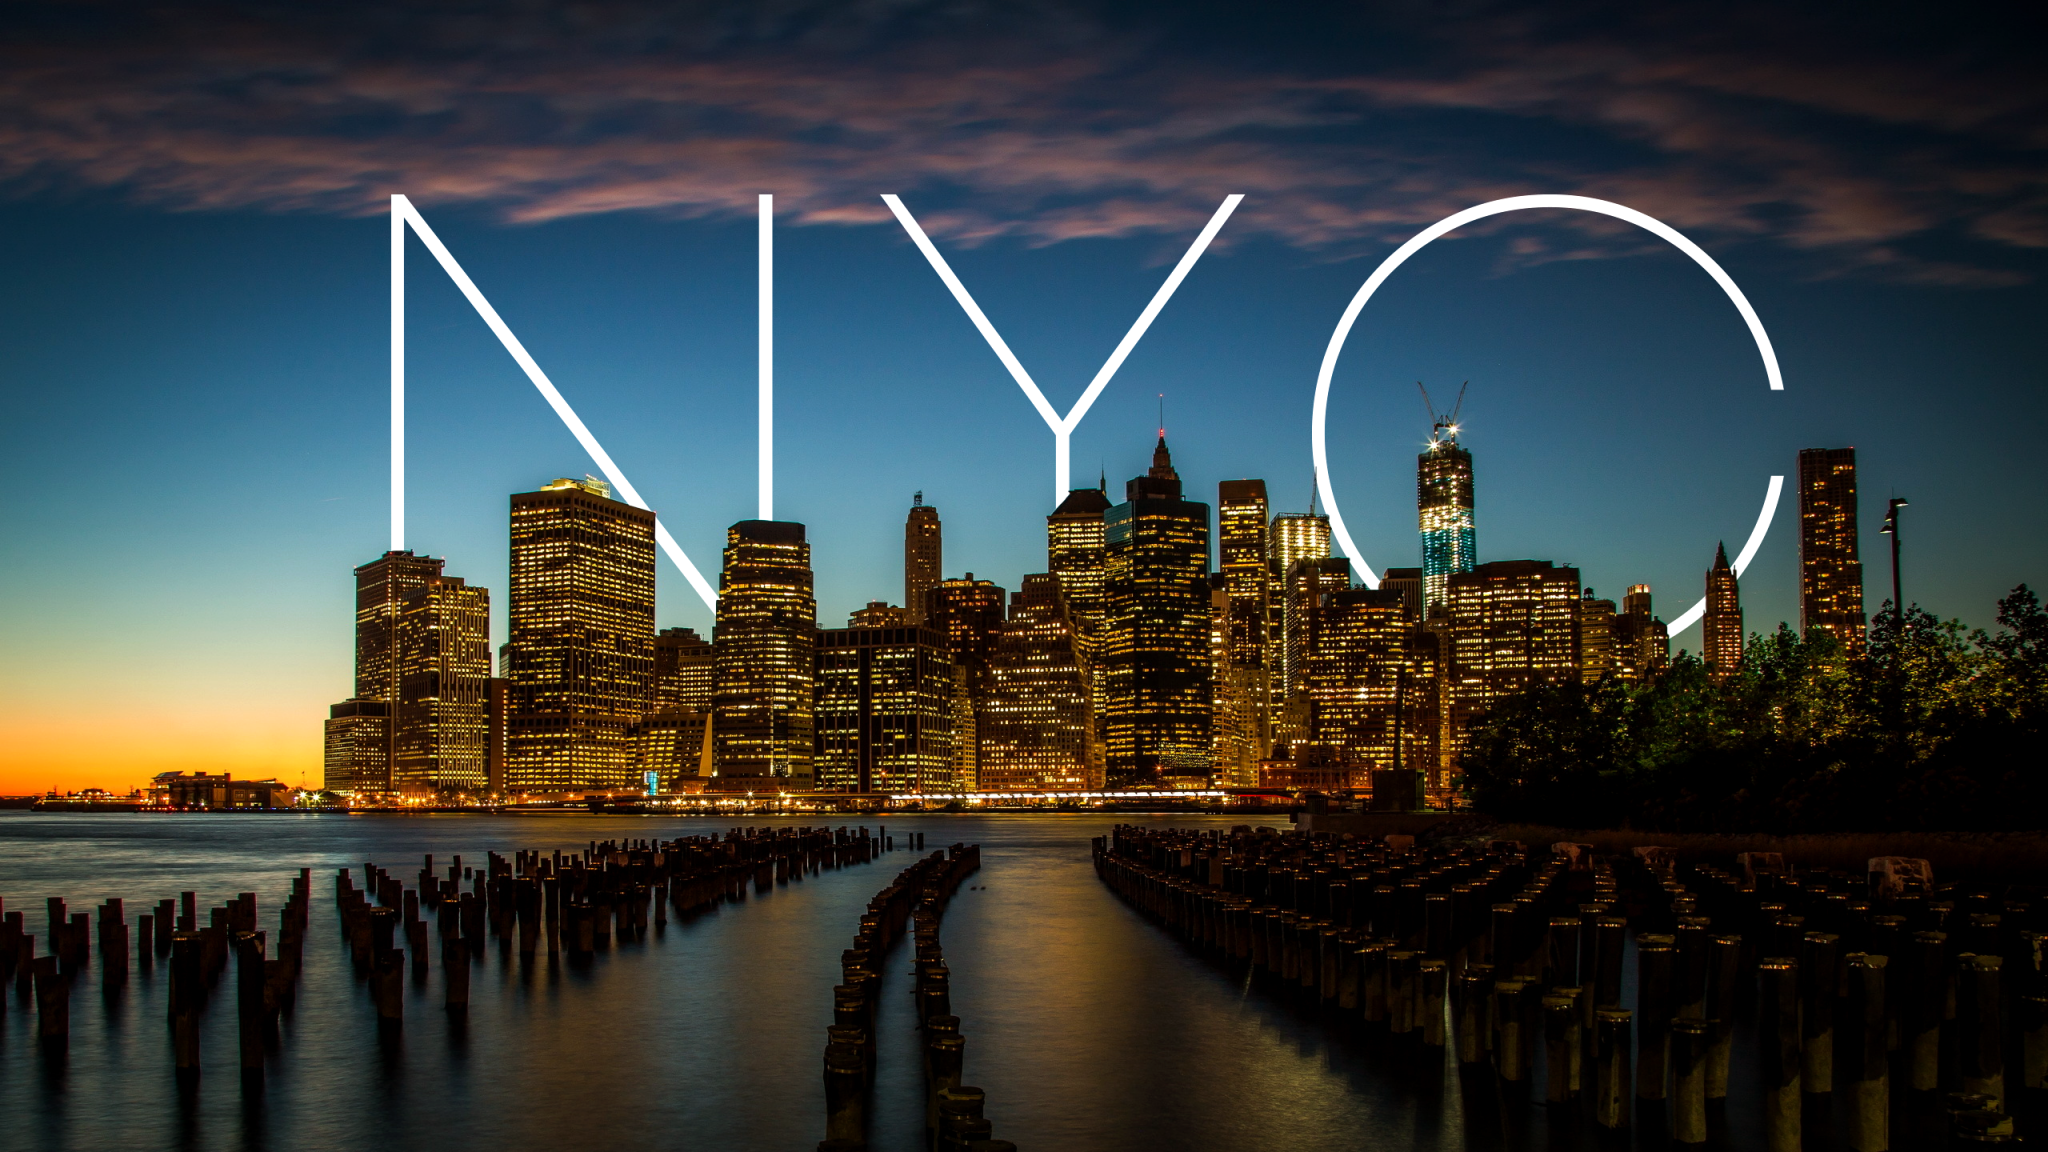 nyc-wallpaper-new-york-city-wallpaper